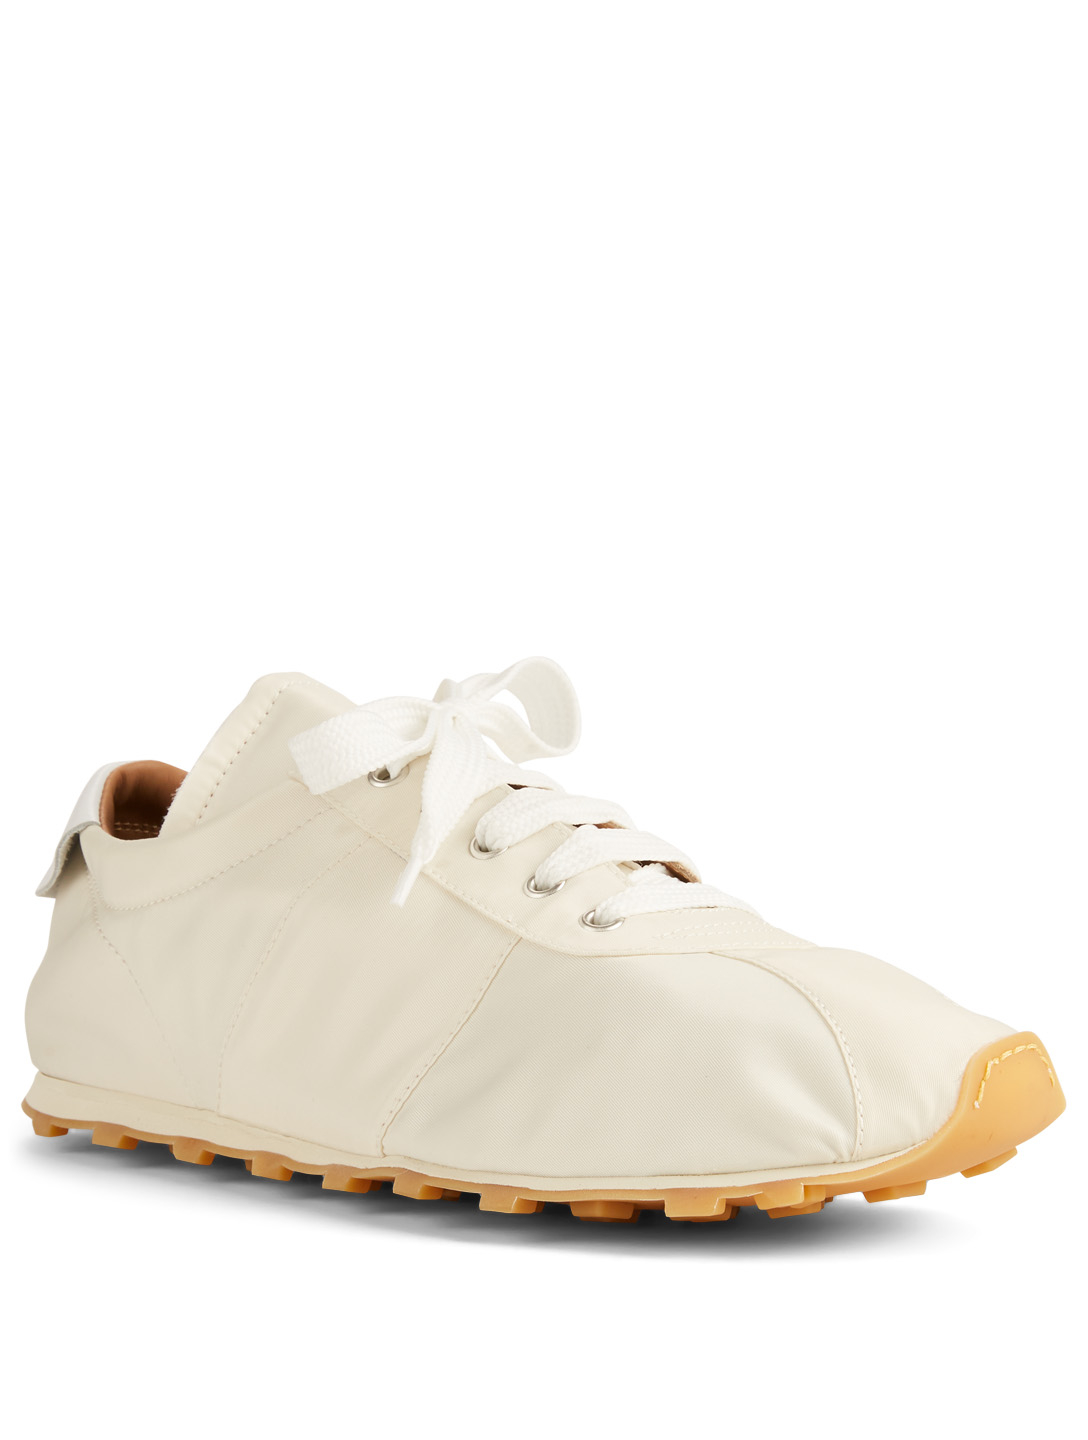 MARNI Tech Jersey Sneakers Men's White